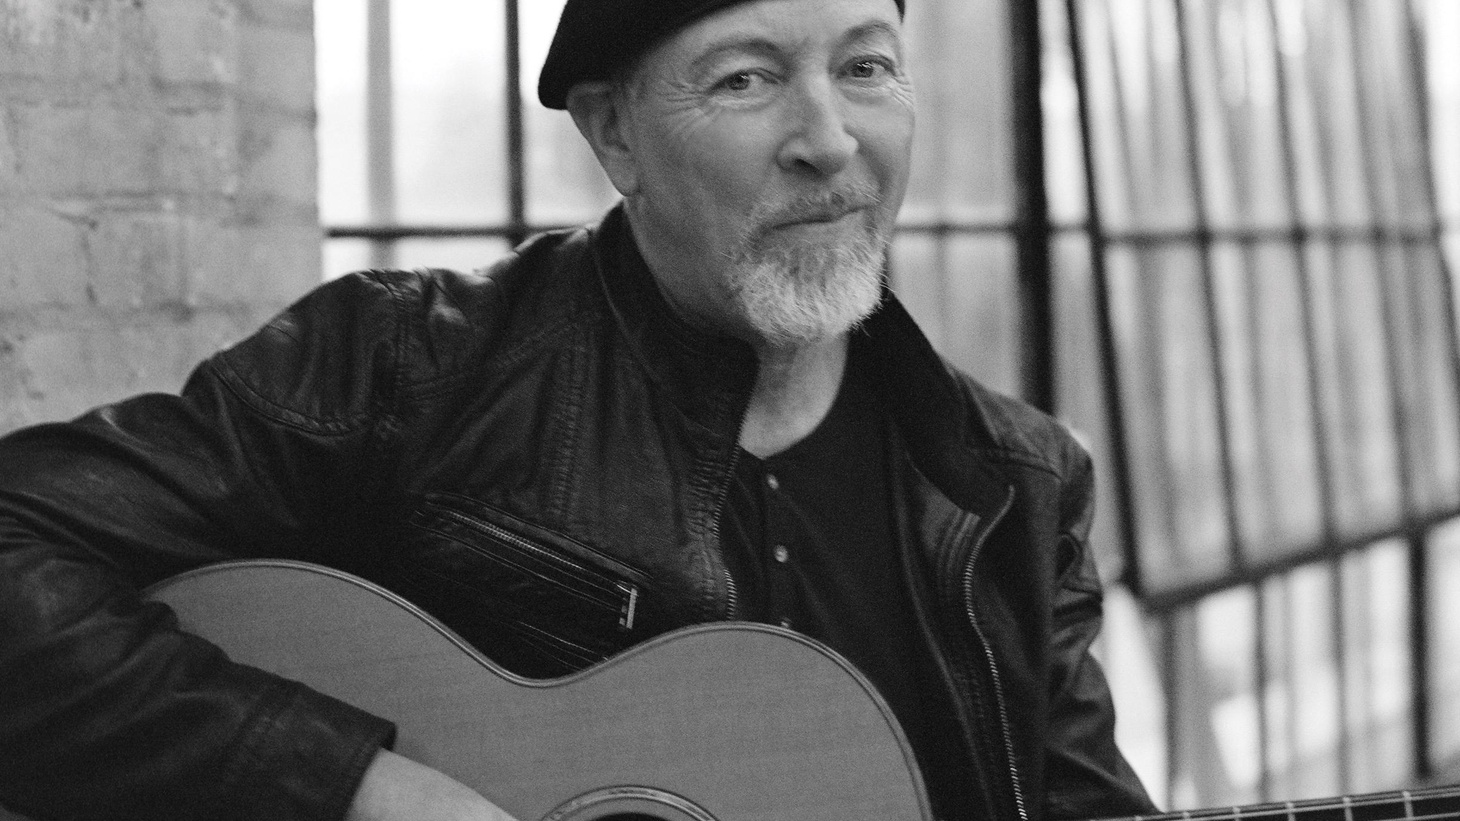 Guitar king Richard Thompson took his band to Nashville to record with producer Buddy Miller on his forthcoming album.